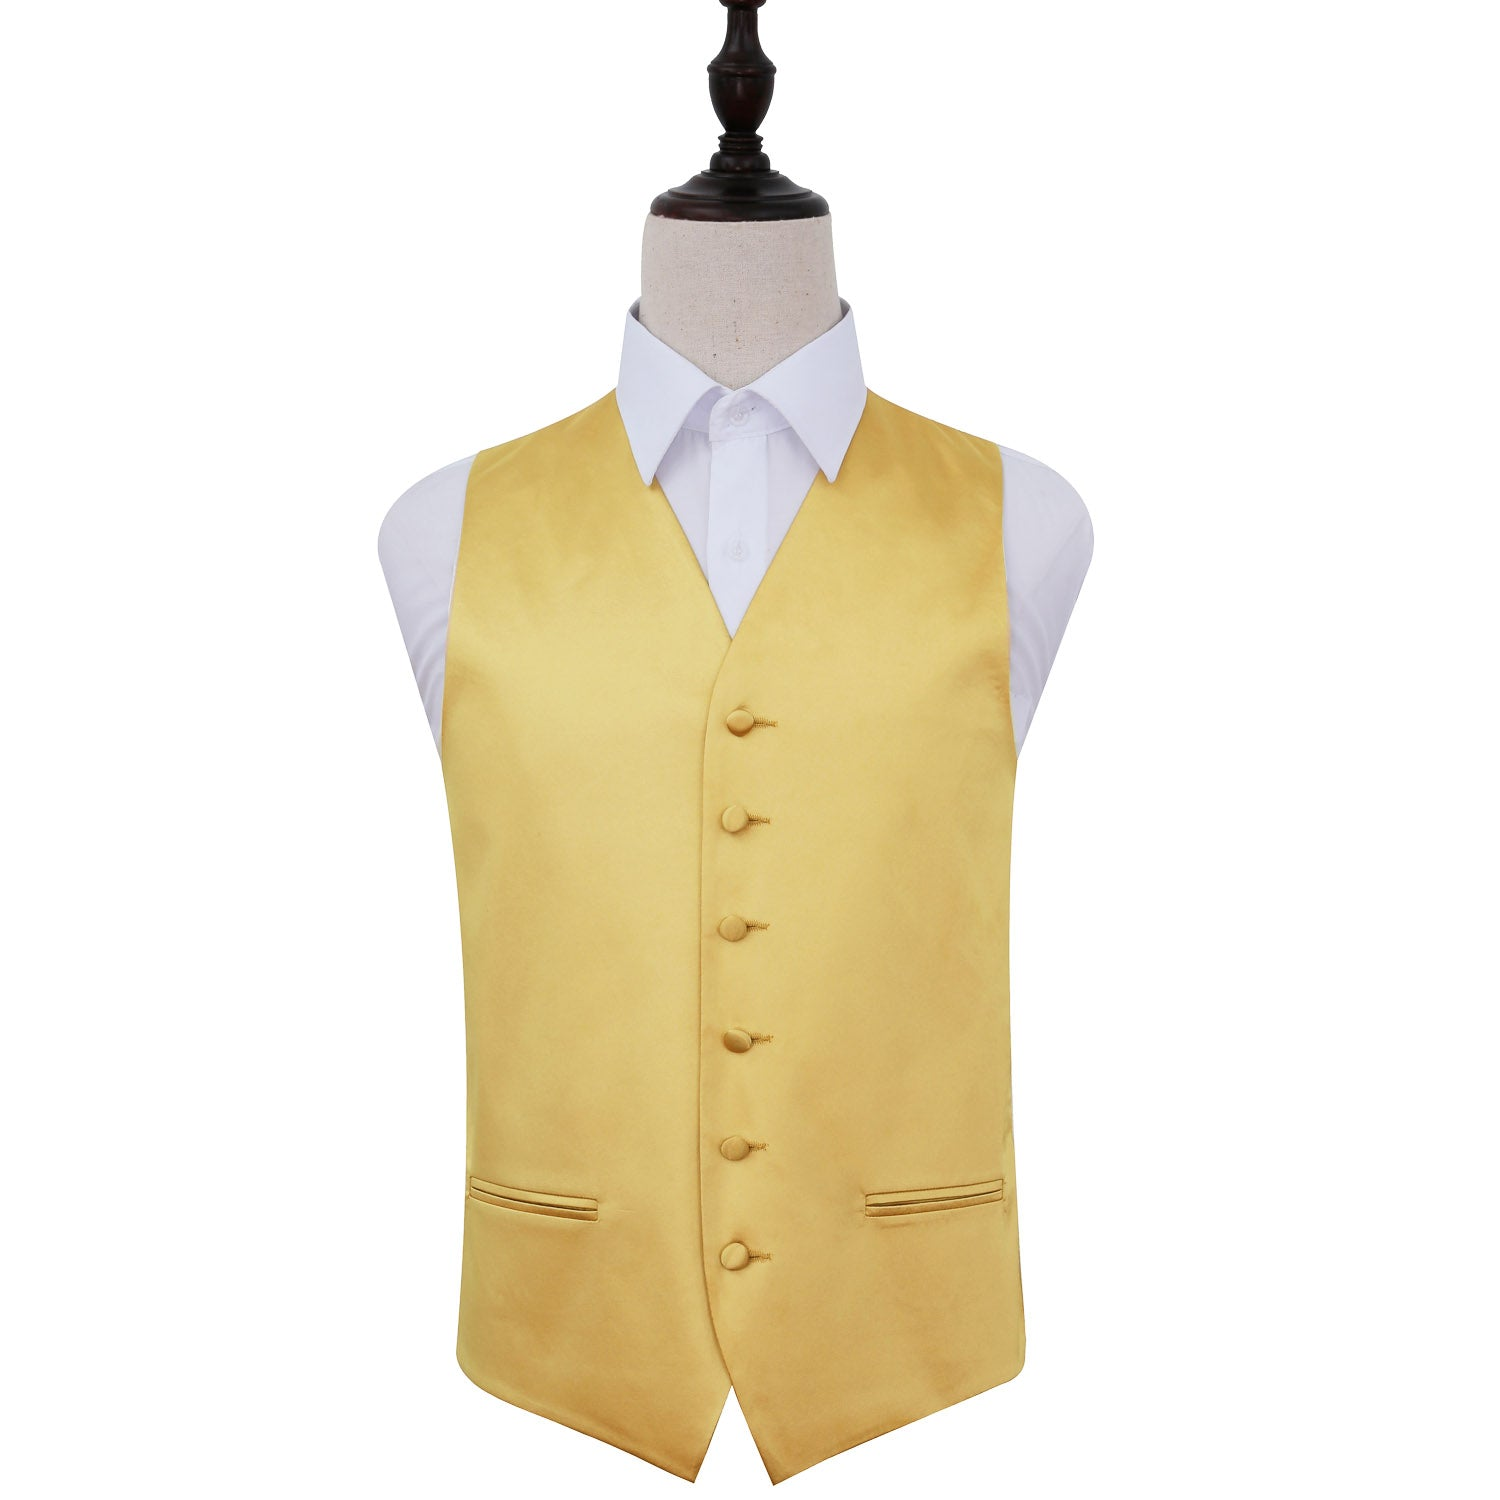 Plain Satin Waistcoat - Gold, 50', Clothing by Low Cost Gifts